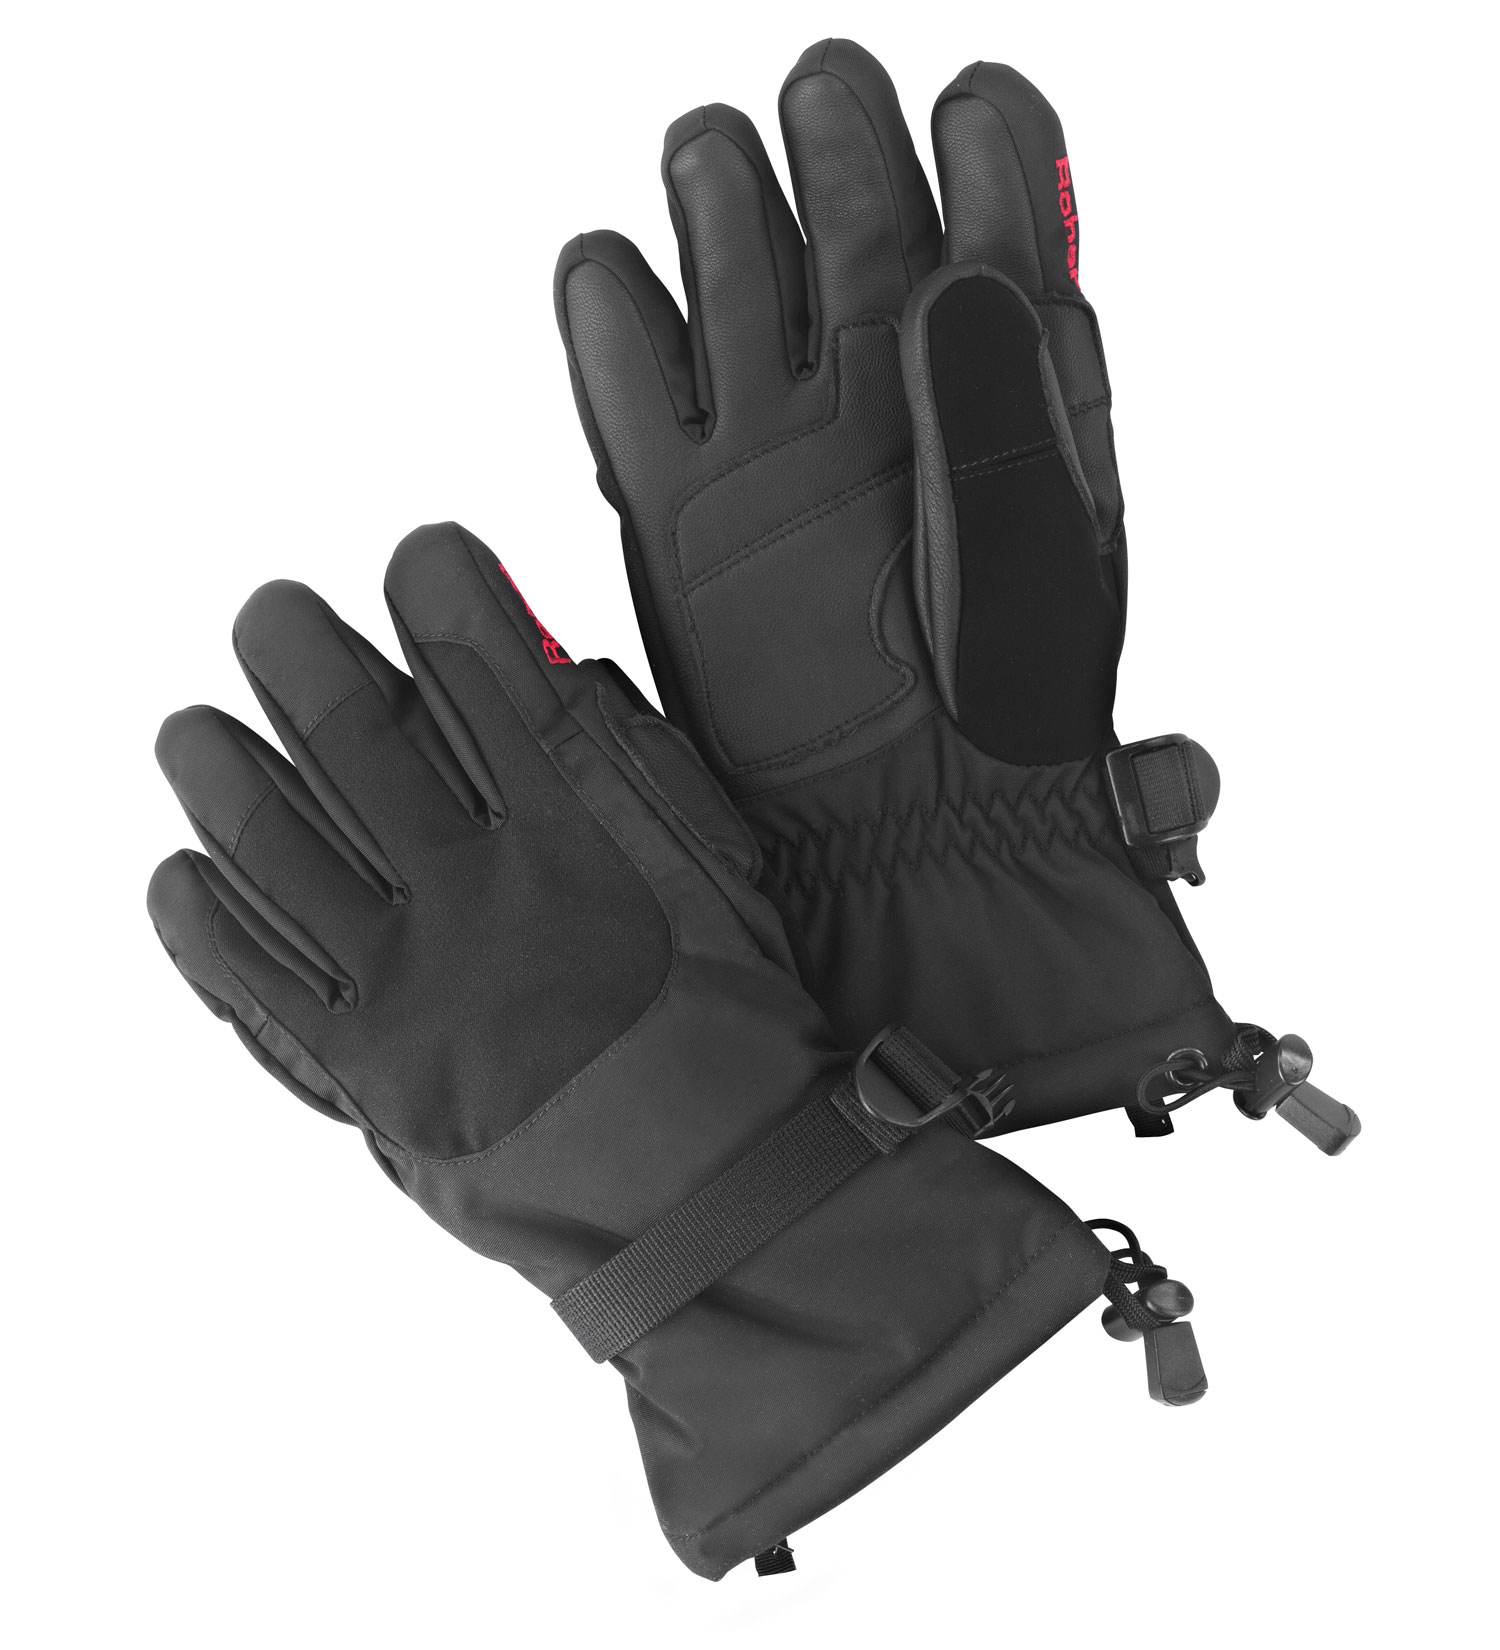 Weather System Gloves Winter Waterproof - Rohan Outdoor